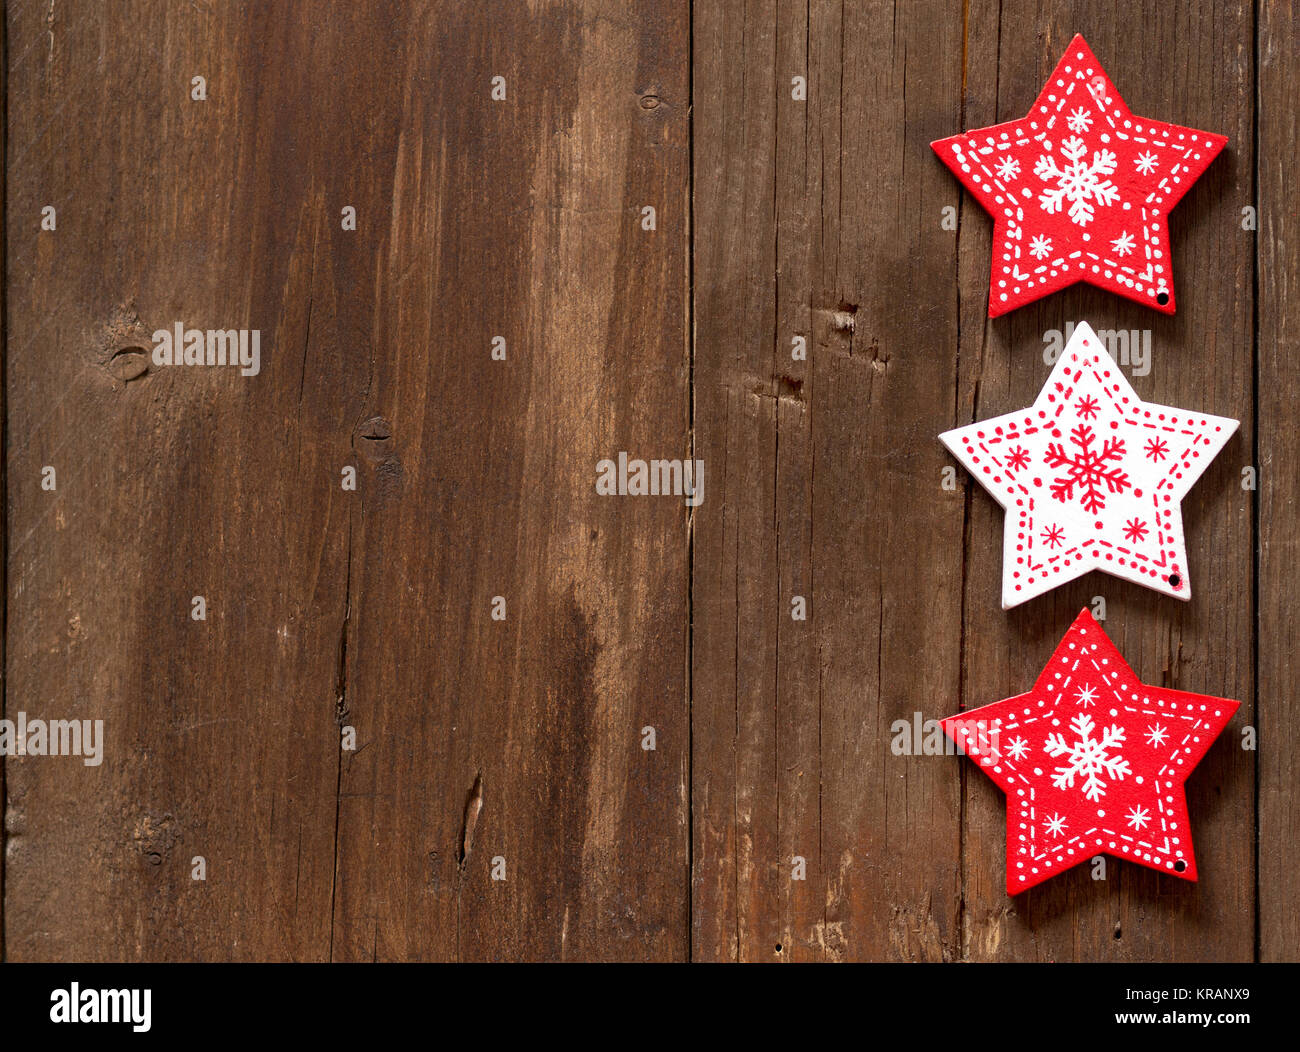 Christmas Wooden Background Old Rustic Stock Photos ...